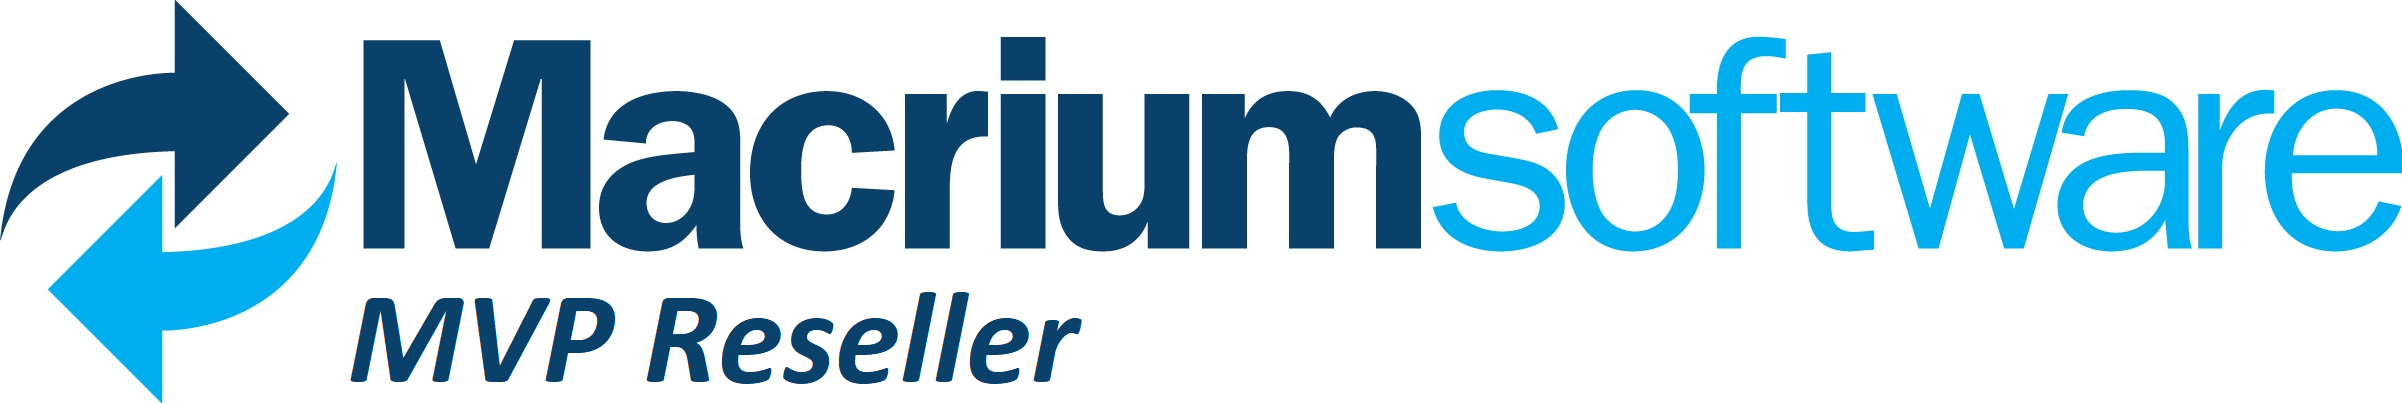 Macrium Valued Partner Program